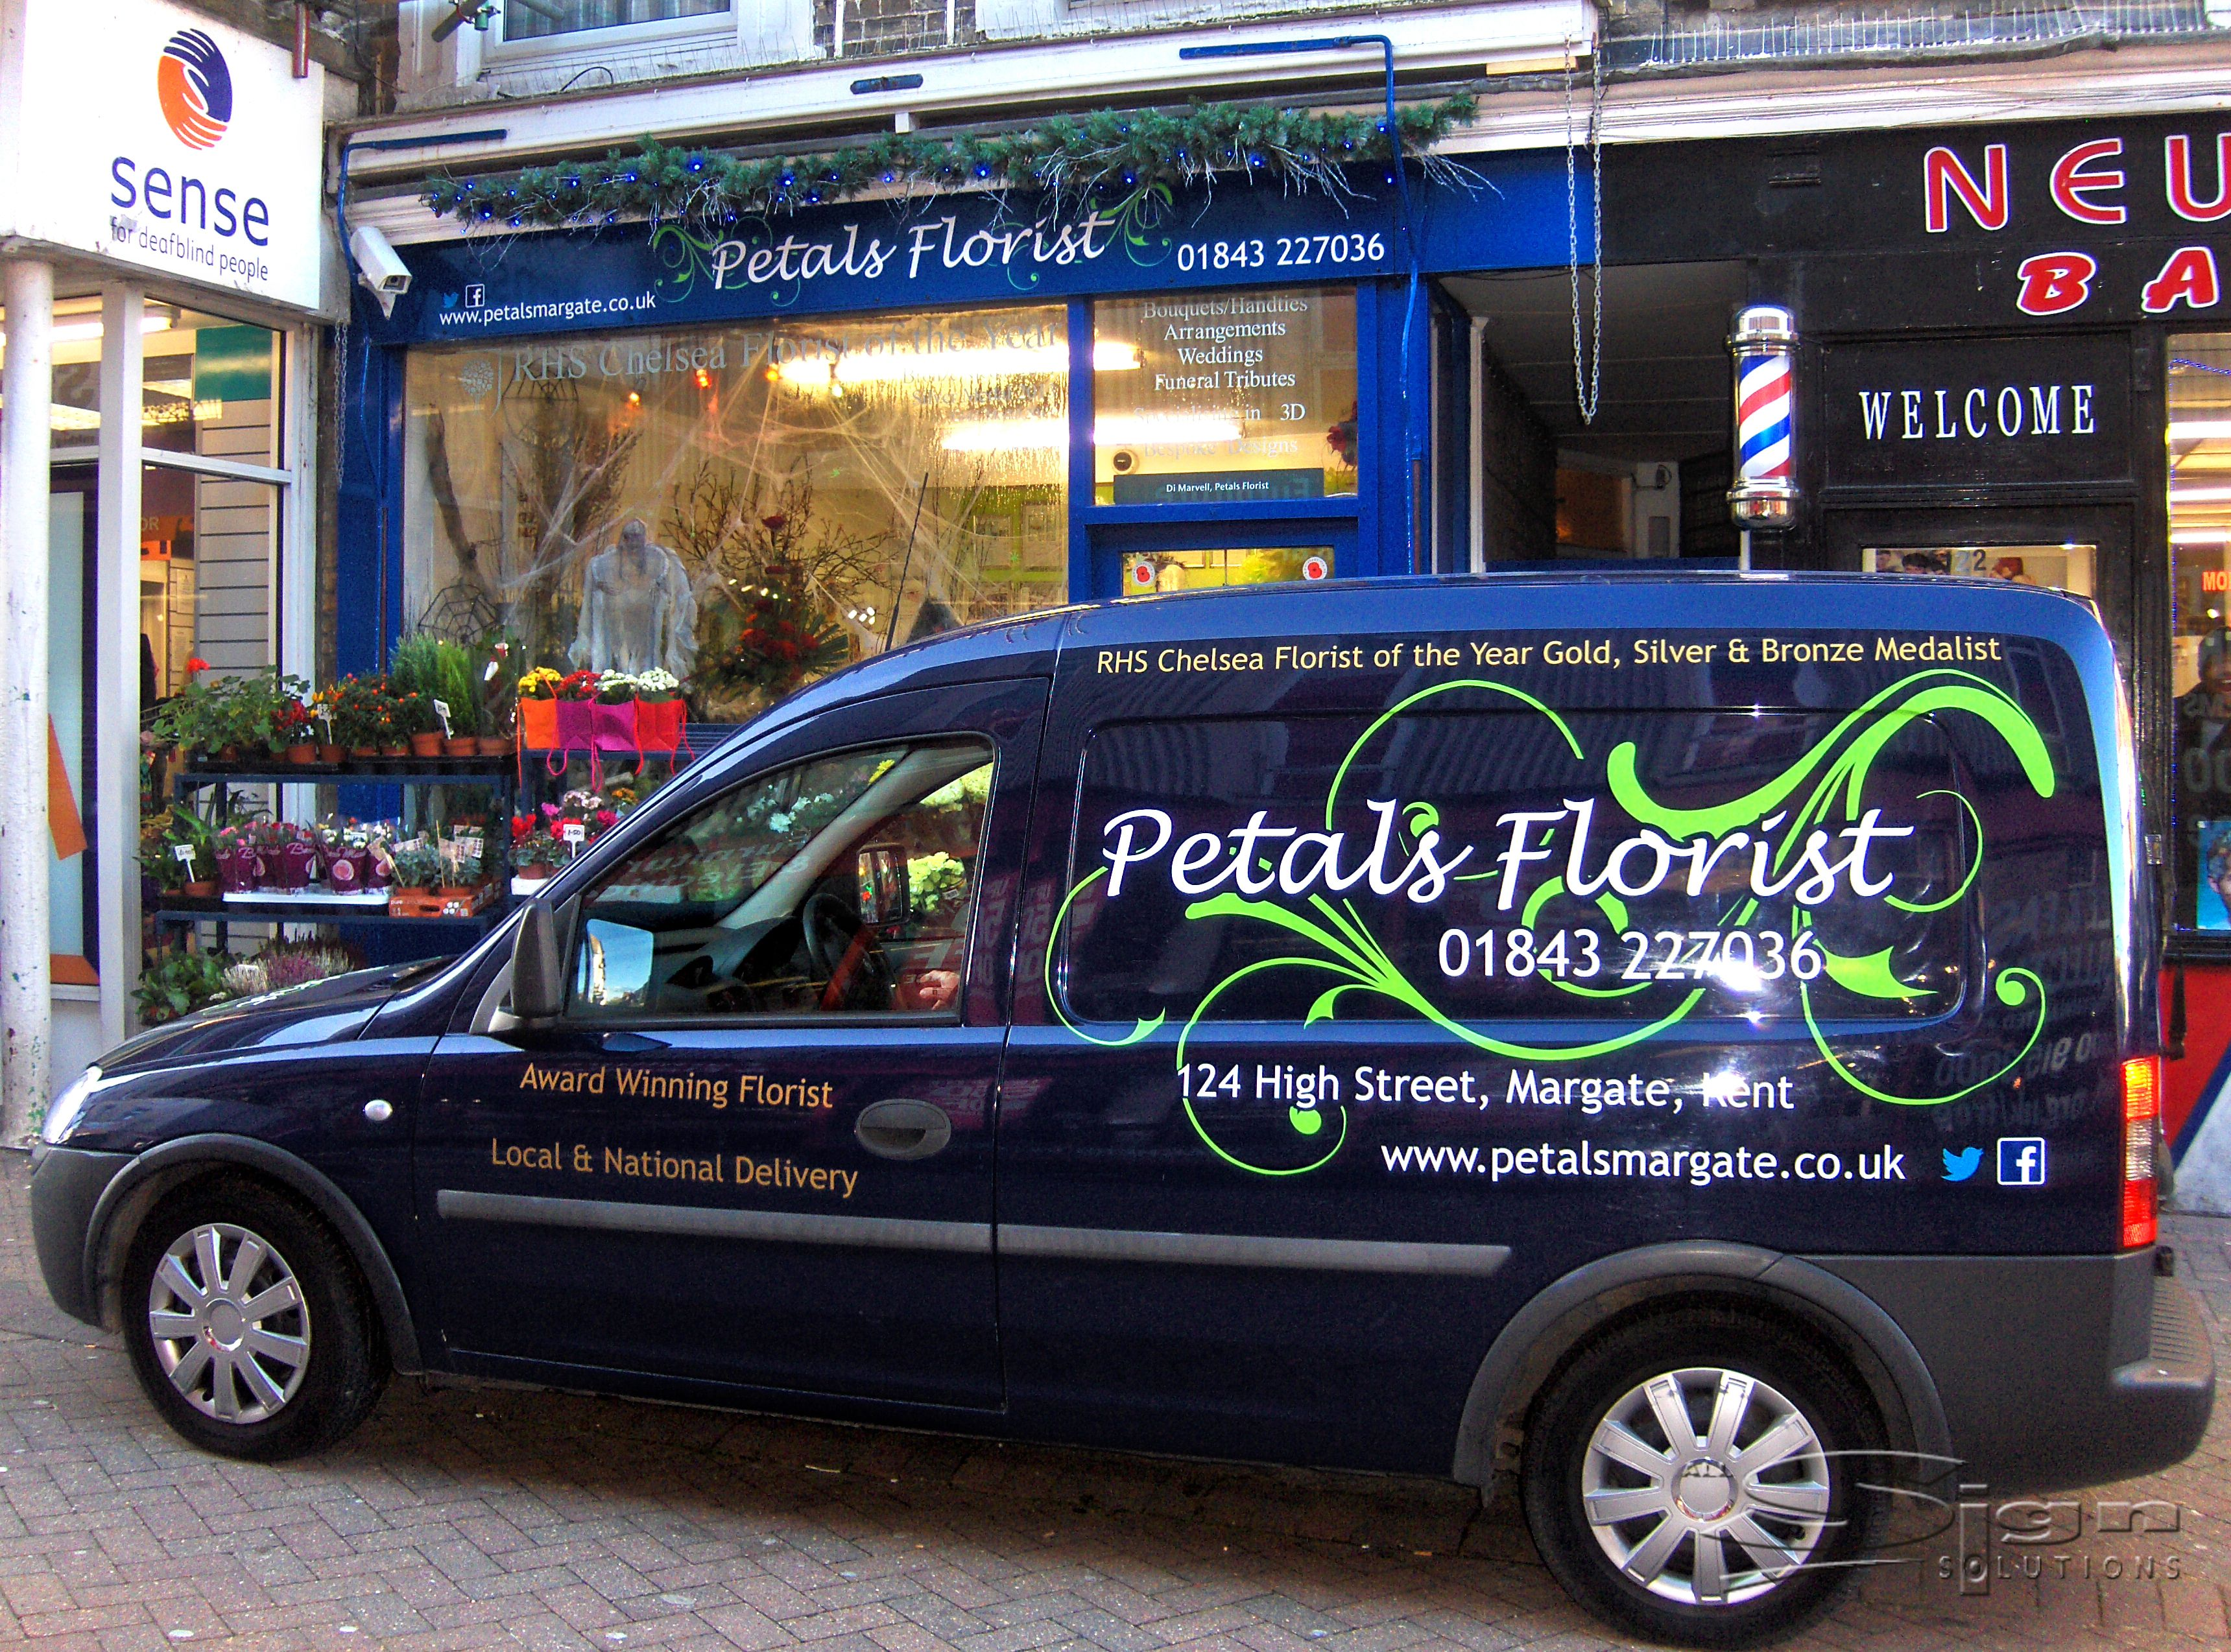 09bbd0e39bed84 Petals Florist in Margate vehicle livery design uses a handwritten styled  font and the colours blue and white. The vivid green swirl stands out on the  dark ...